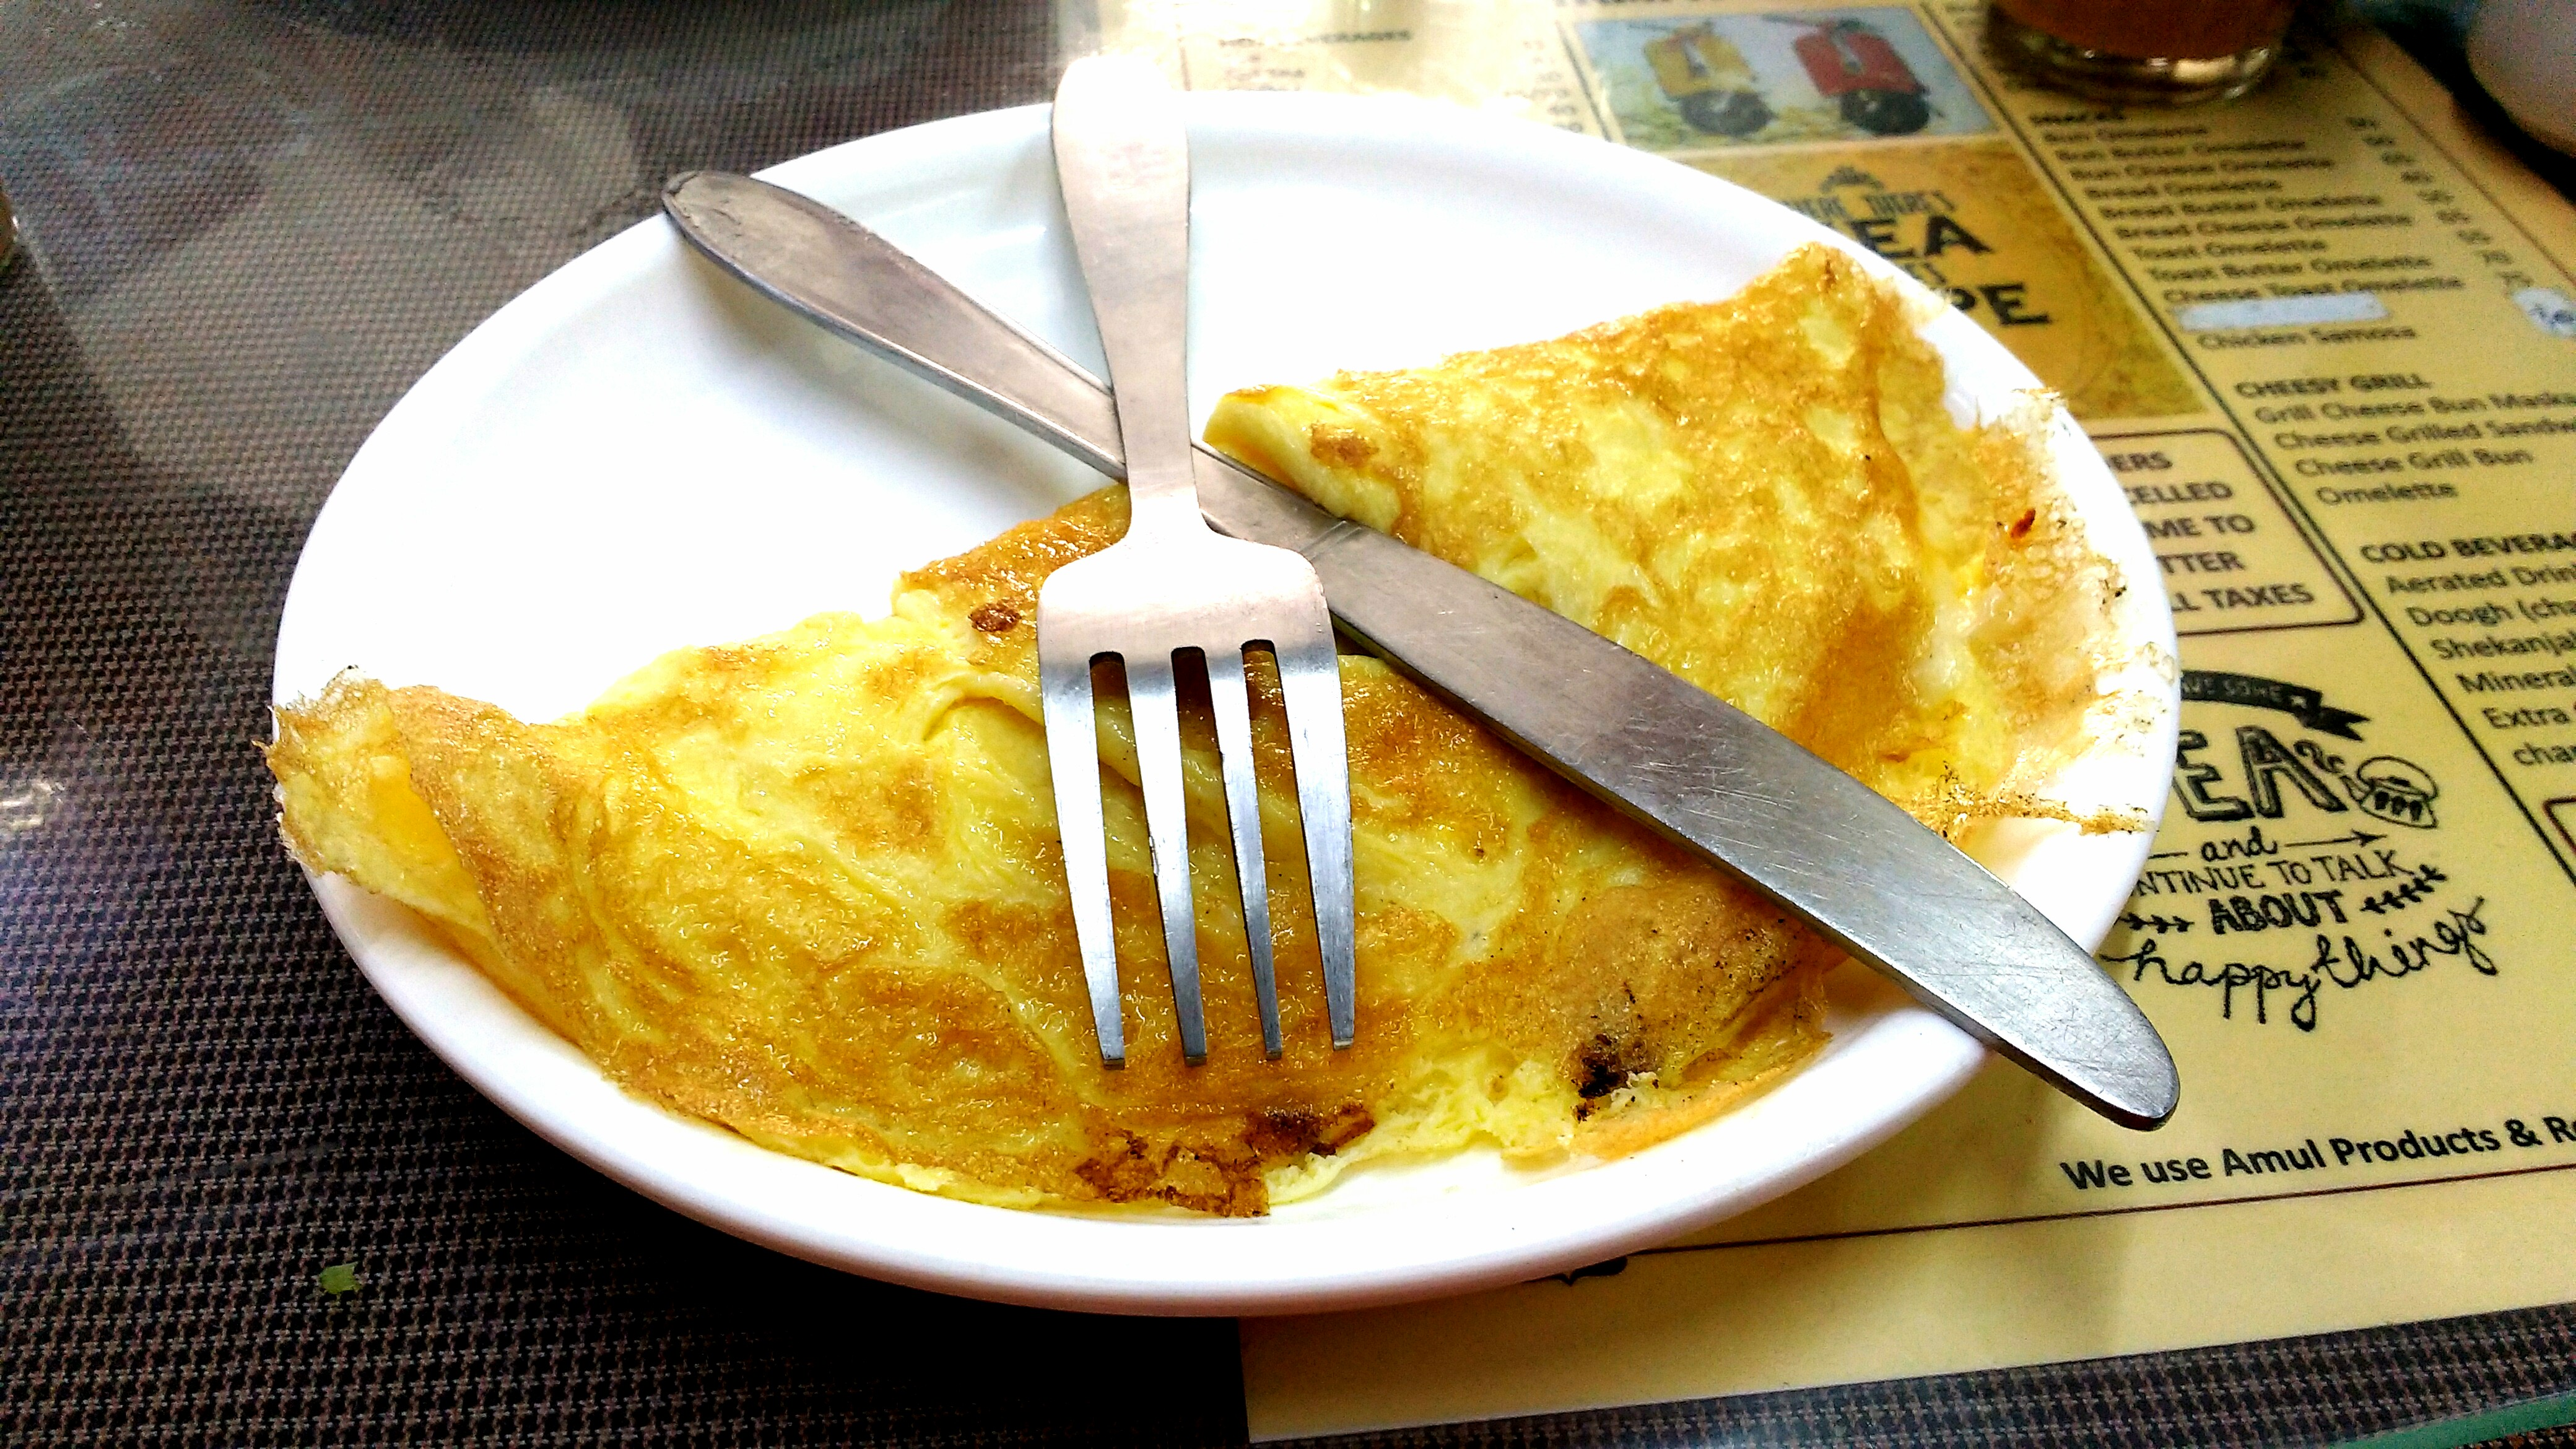 The gooey cheese omelette